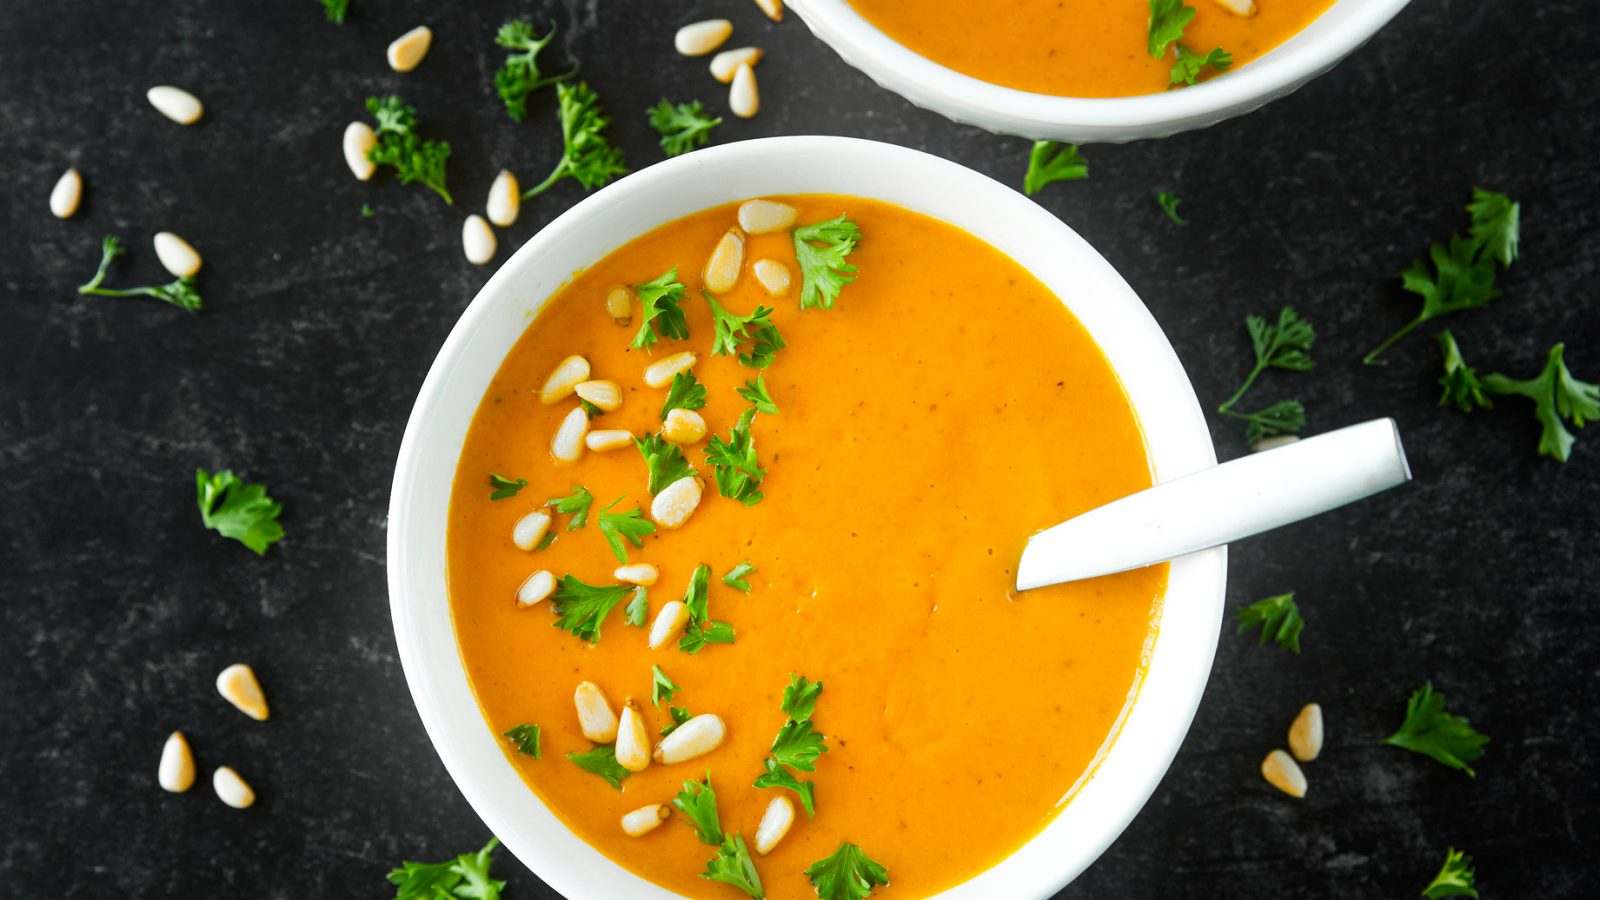 vegan carrot ginger soup portioned into two bowls on black background